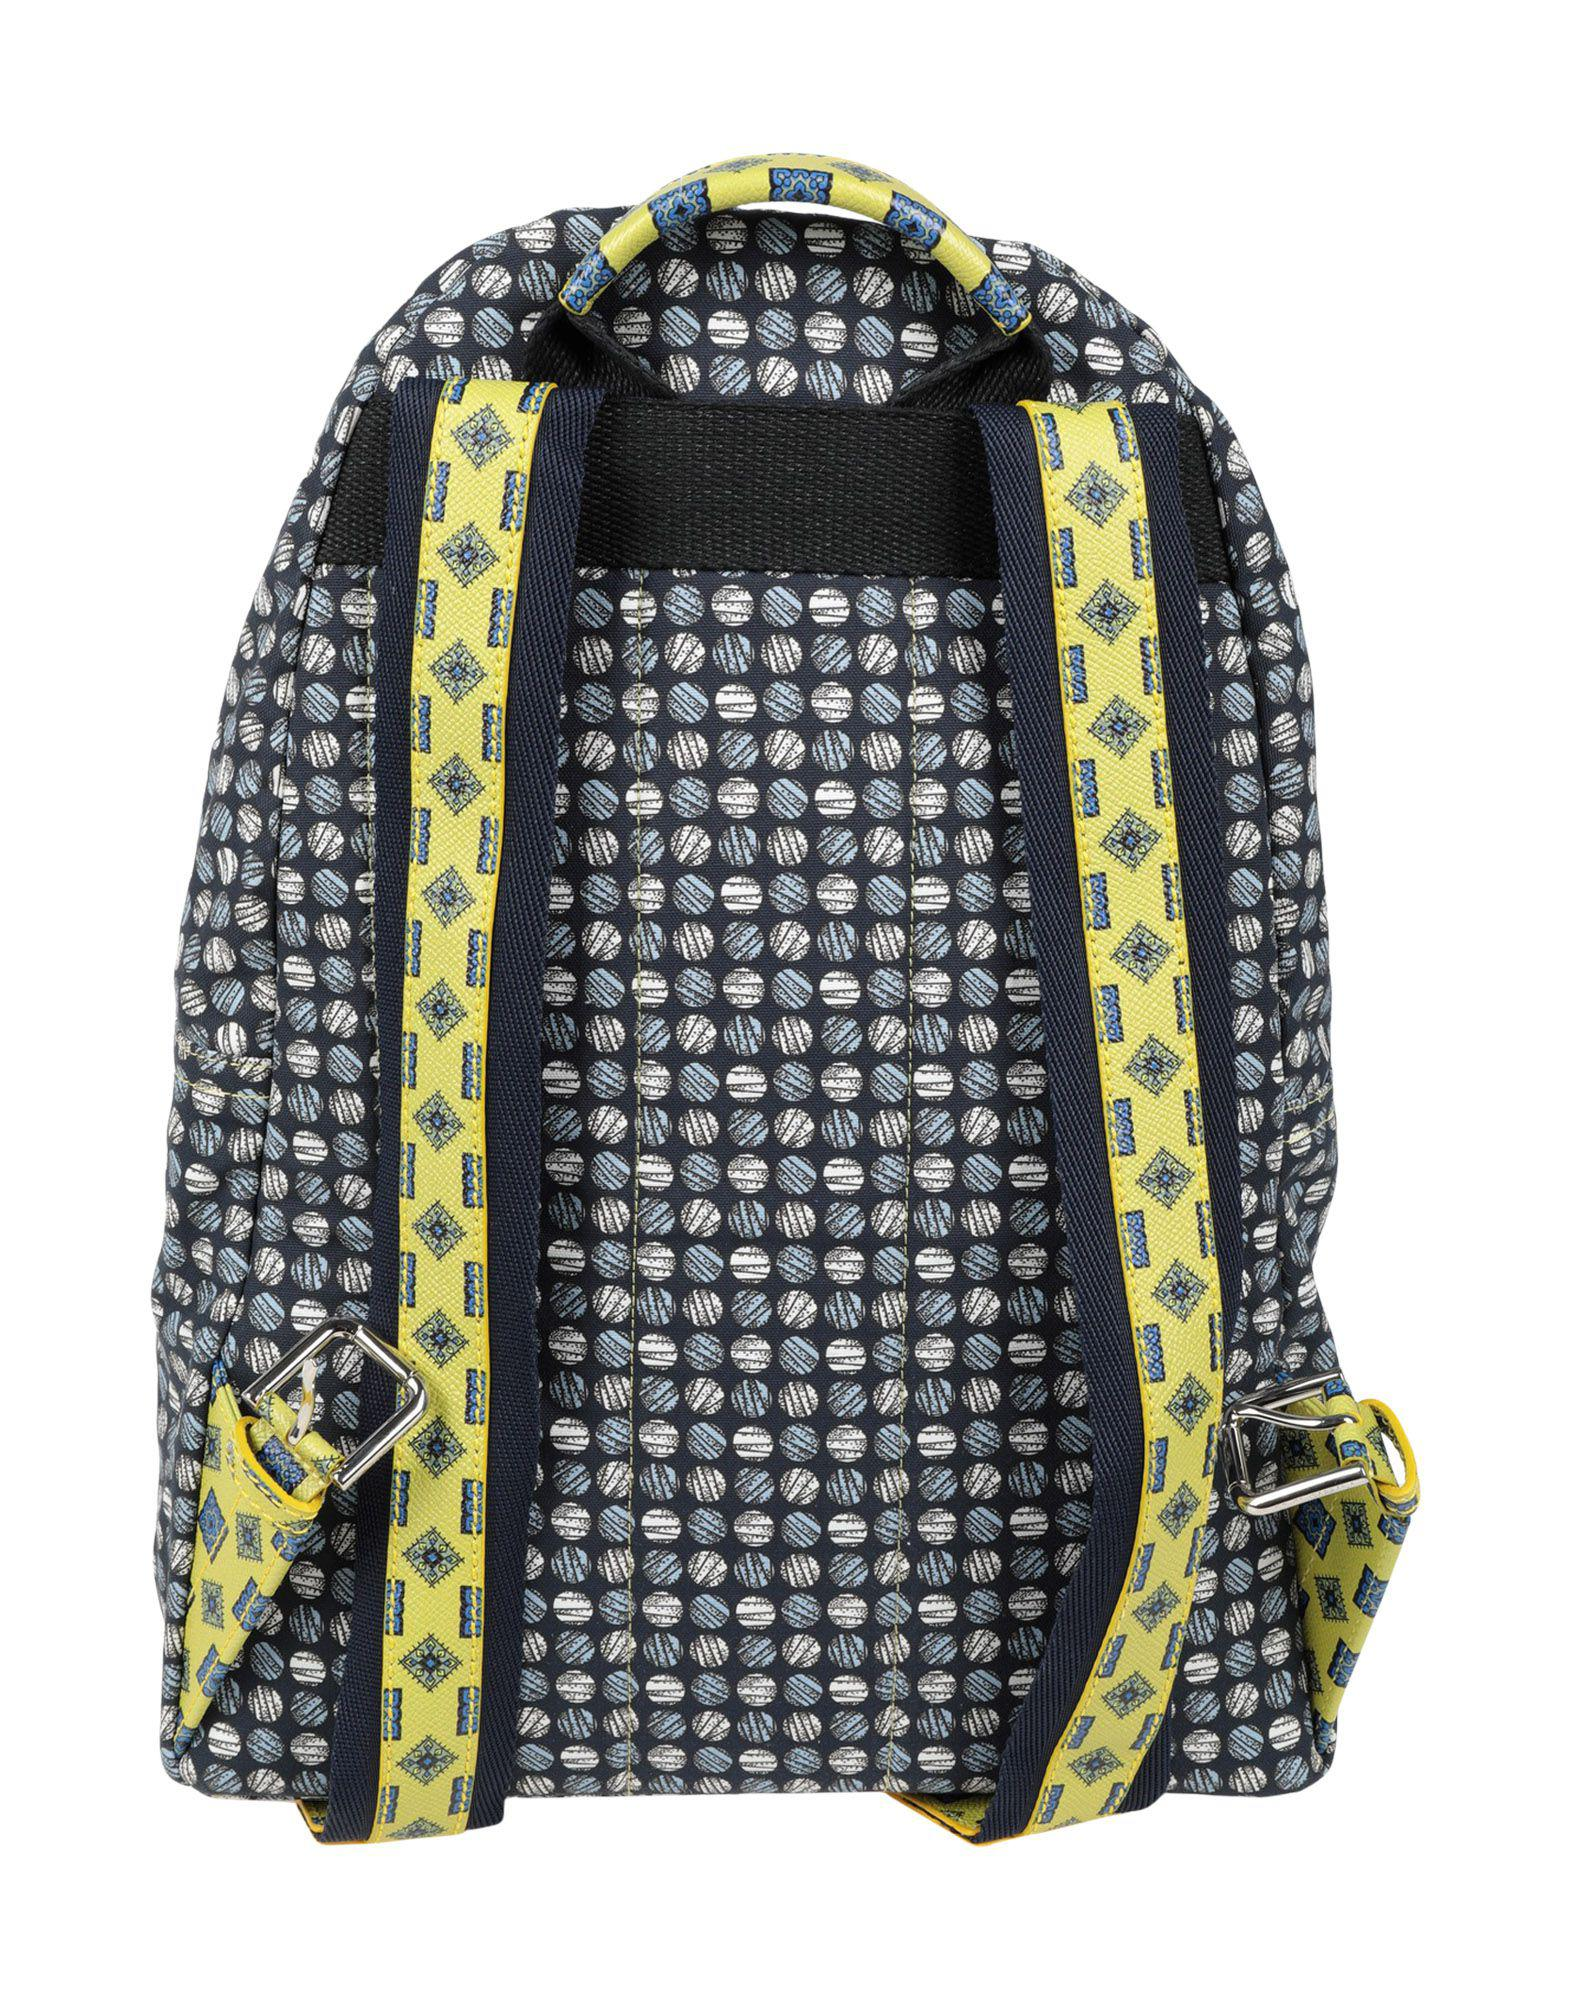 ... official photos 806c9 aecea Dolce Gabbana Backpacks Bum Bags in Blue  for Men - Lyst ... 4a7bf8ecb1